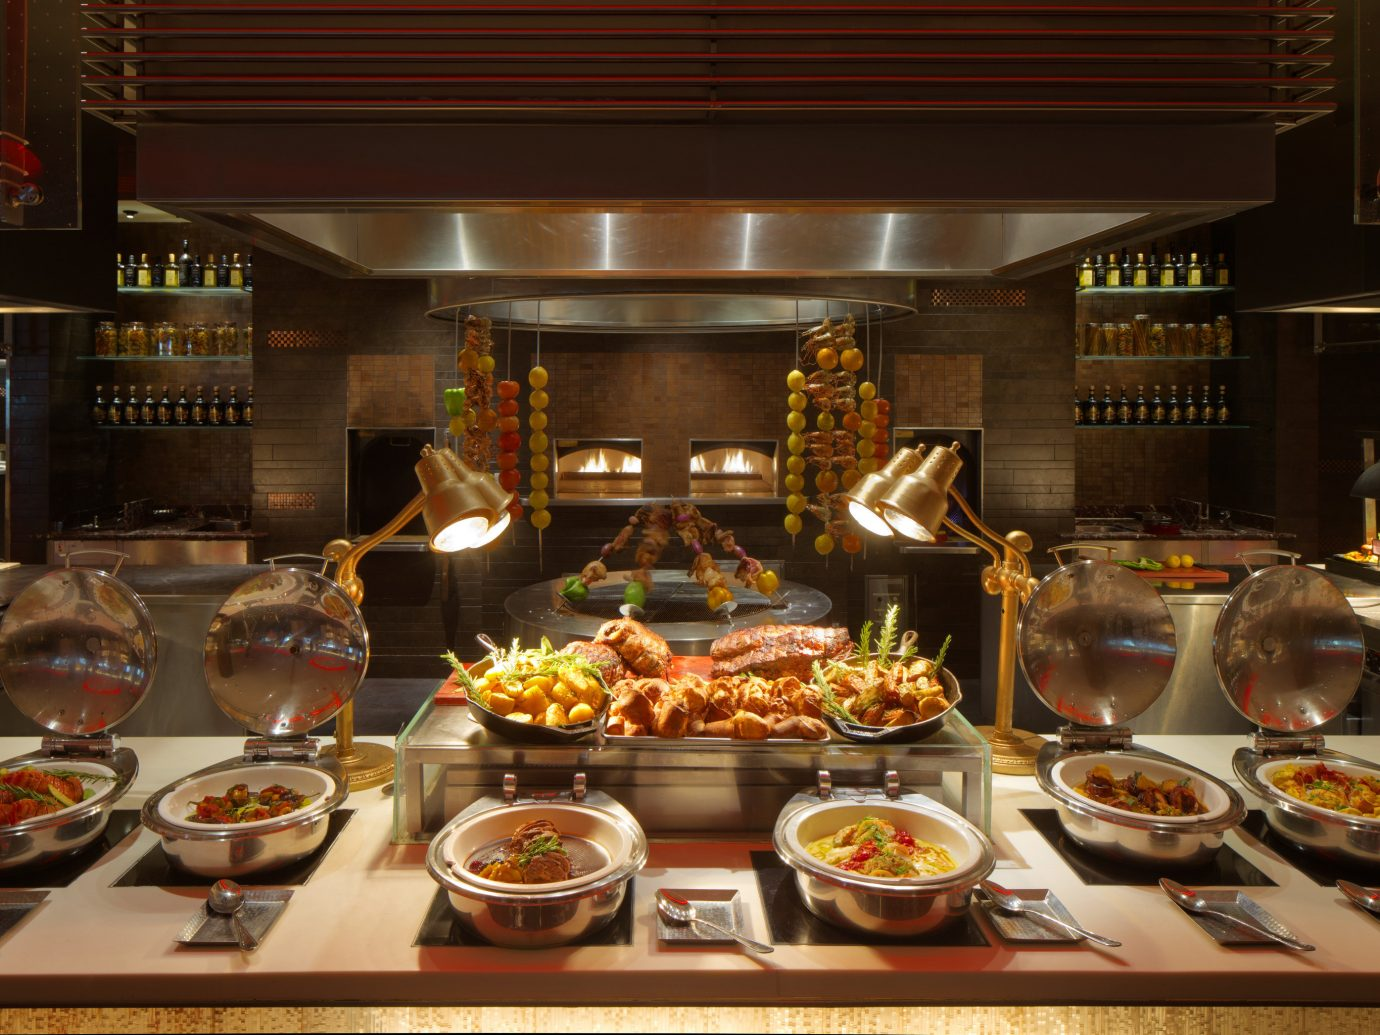 Dubai Hotels Luxury Travel Middle East table food plate indoor buffet dish meal cuisine brunch counter appetizer asian food